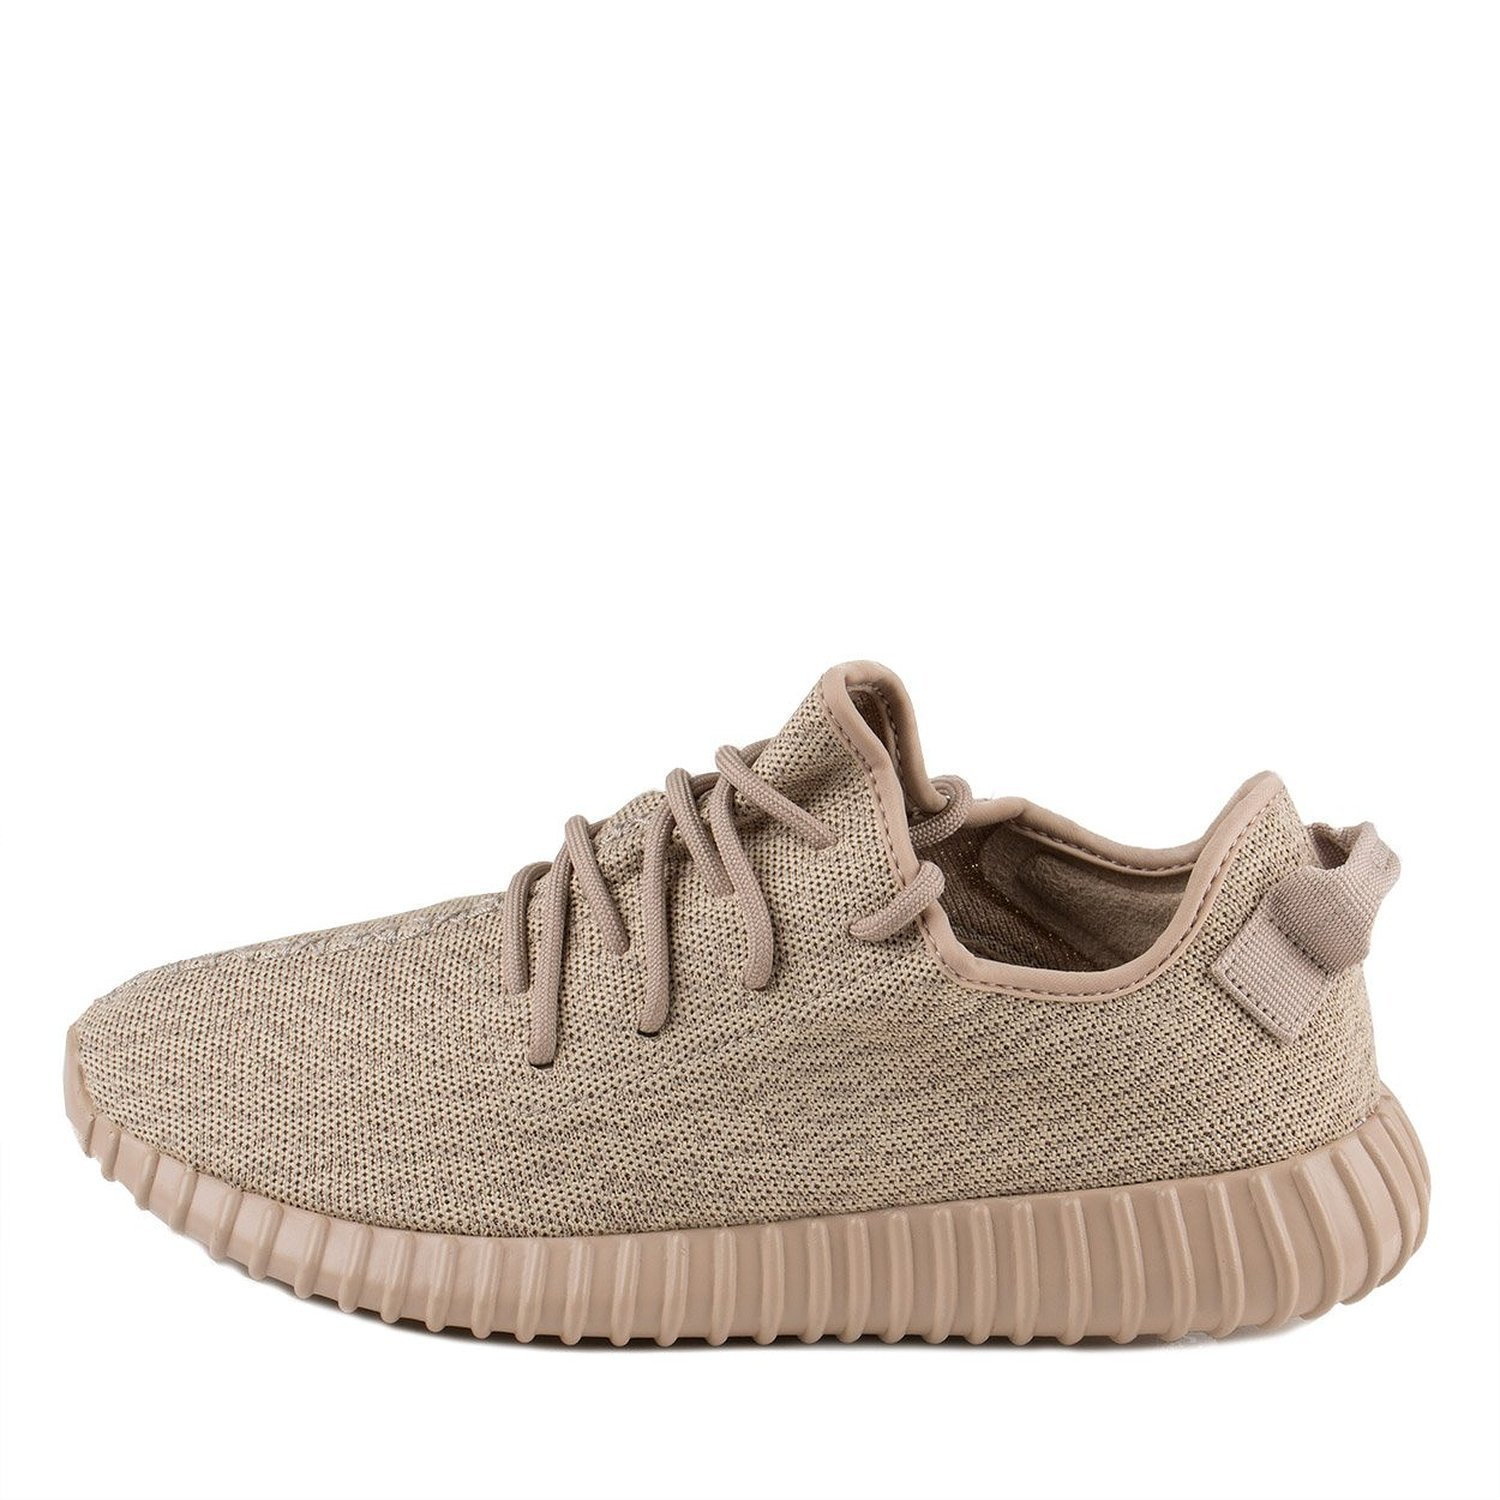 Galleon - Adidas Womens Yeezy Boost 350